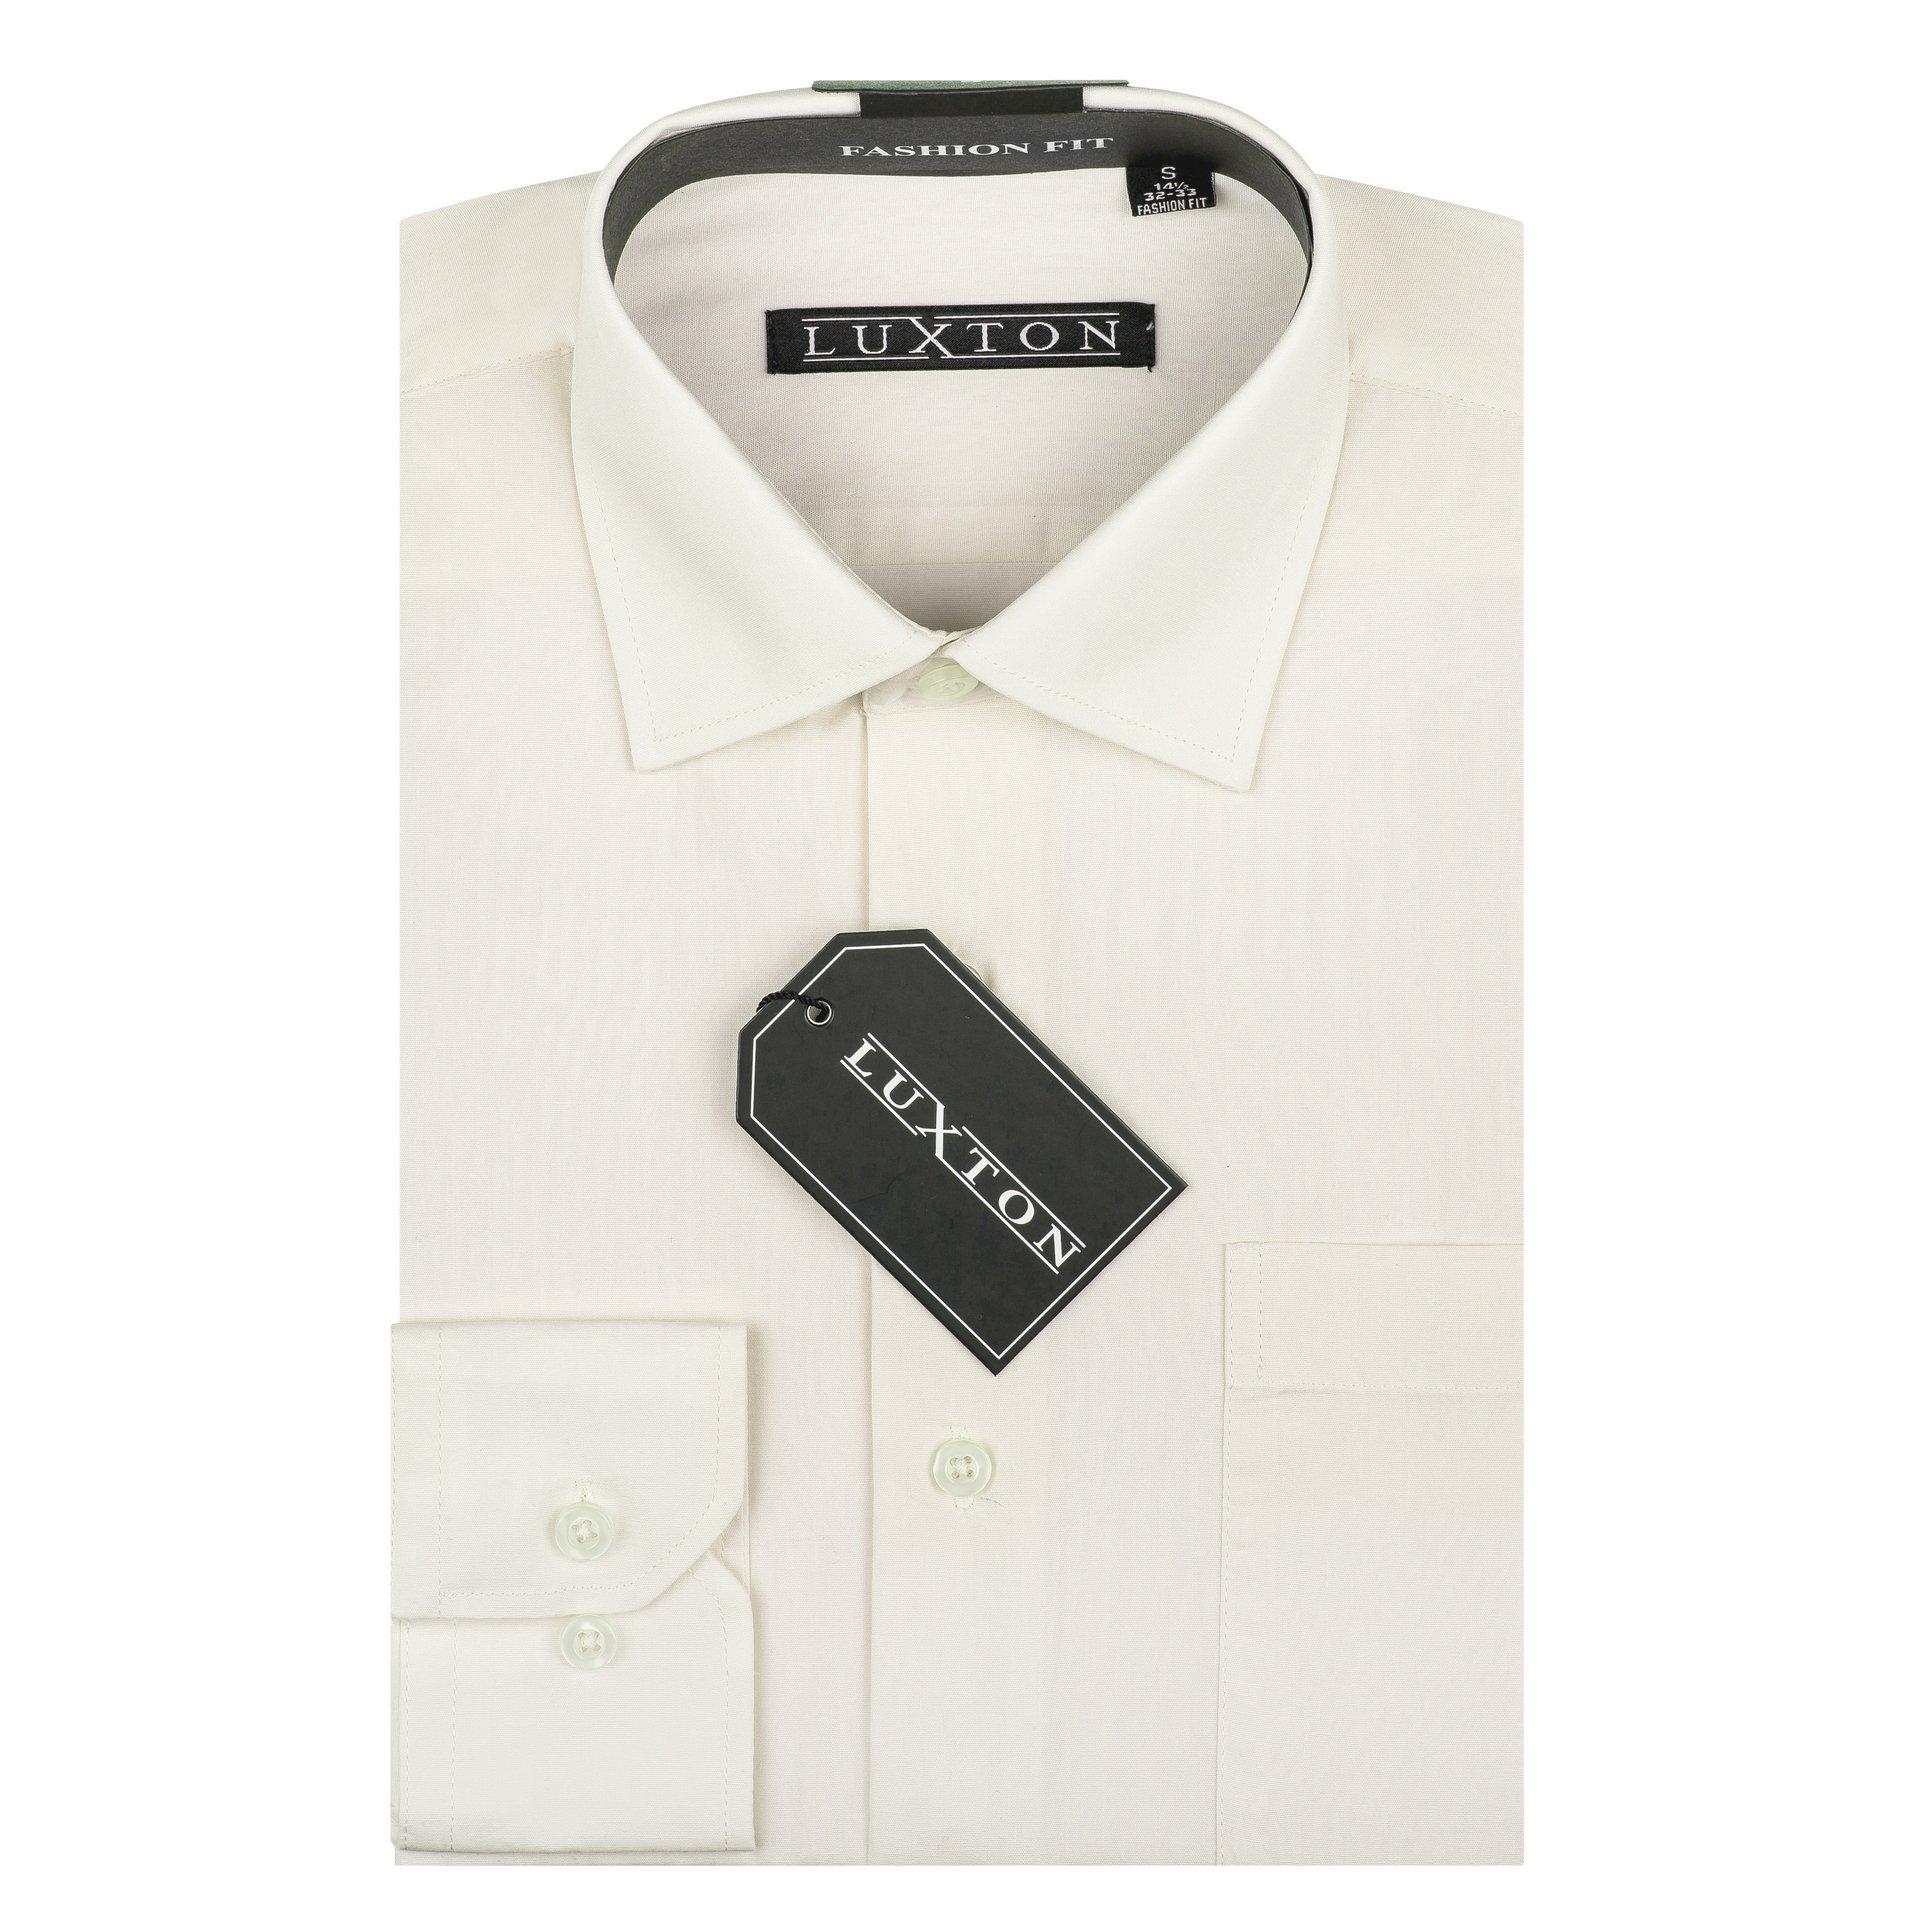 Luxton Cotton Poly Shirt Collection Regular Fit (Off White 639,Medium/Neck:15-15 1/2, Sleeve:34/35)